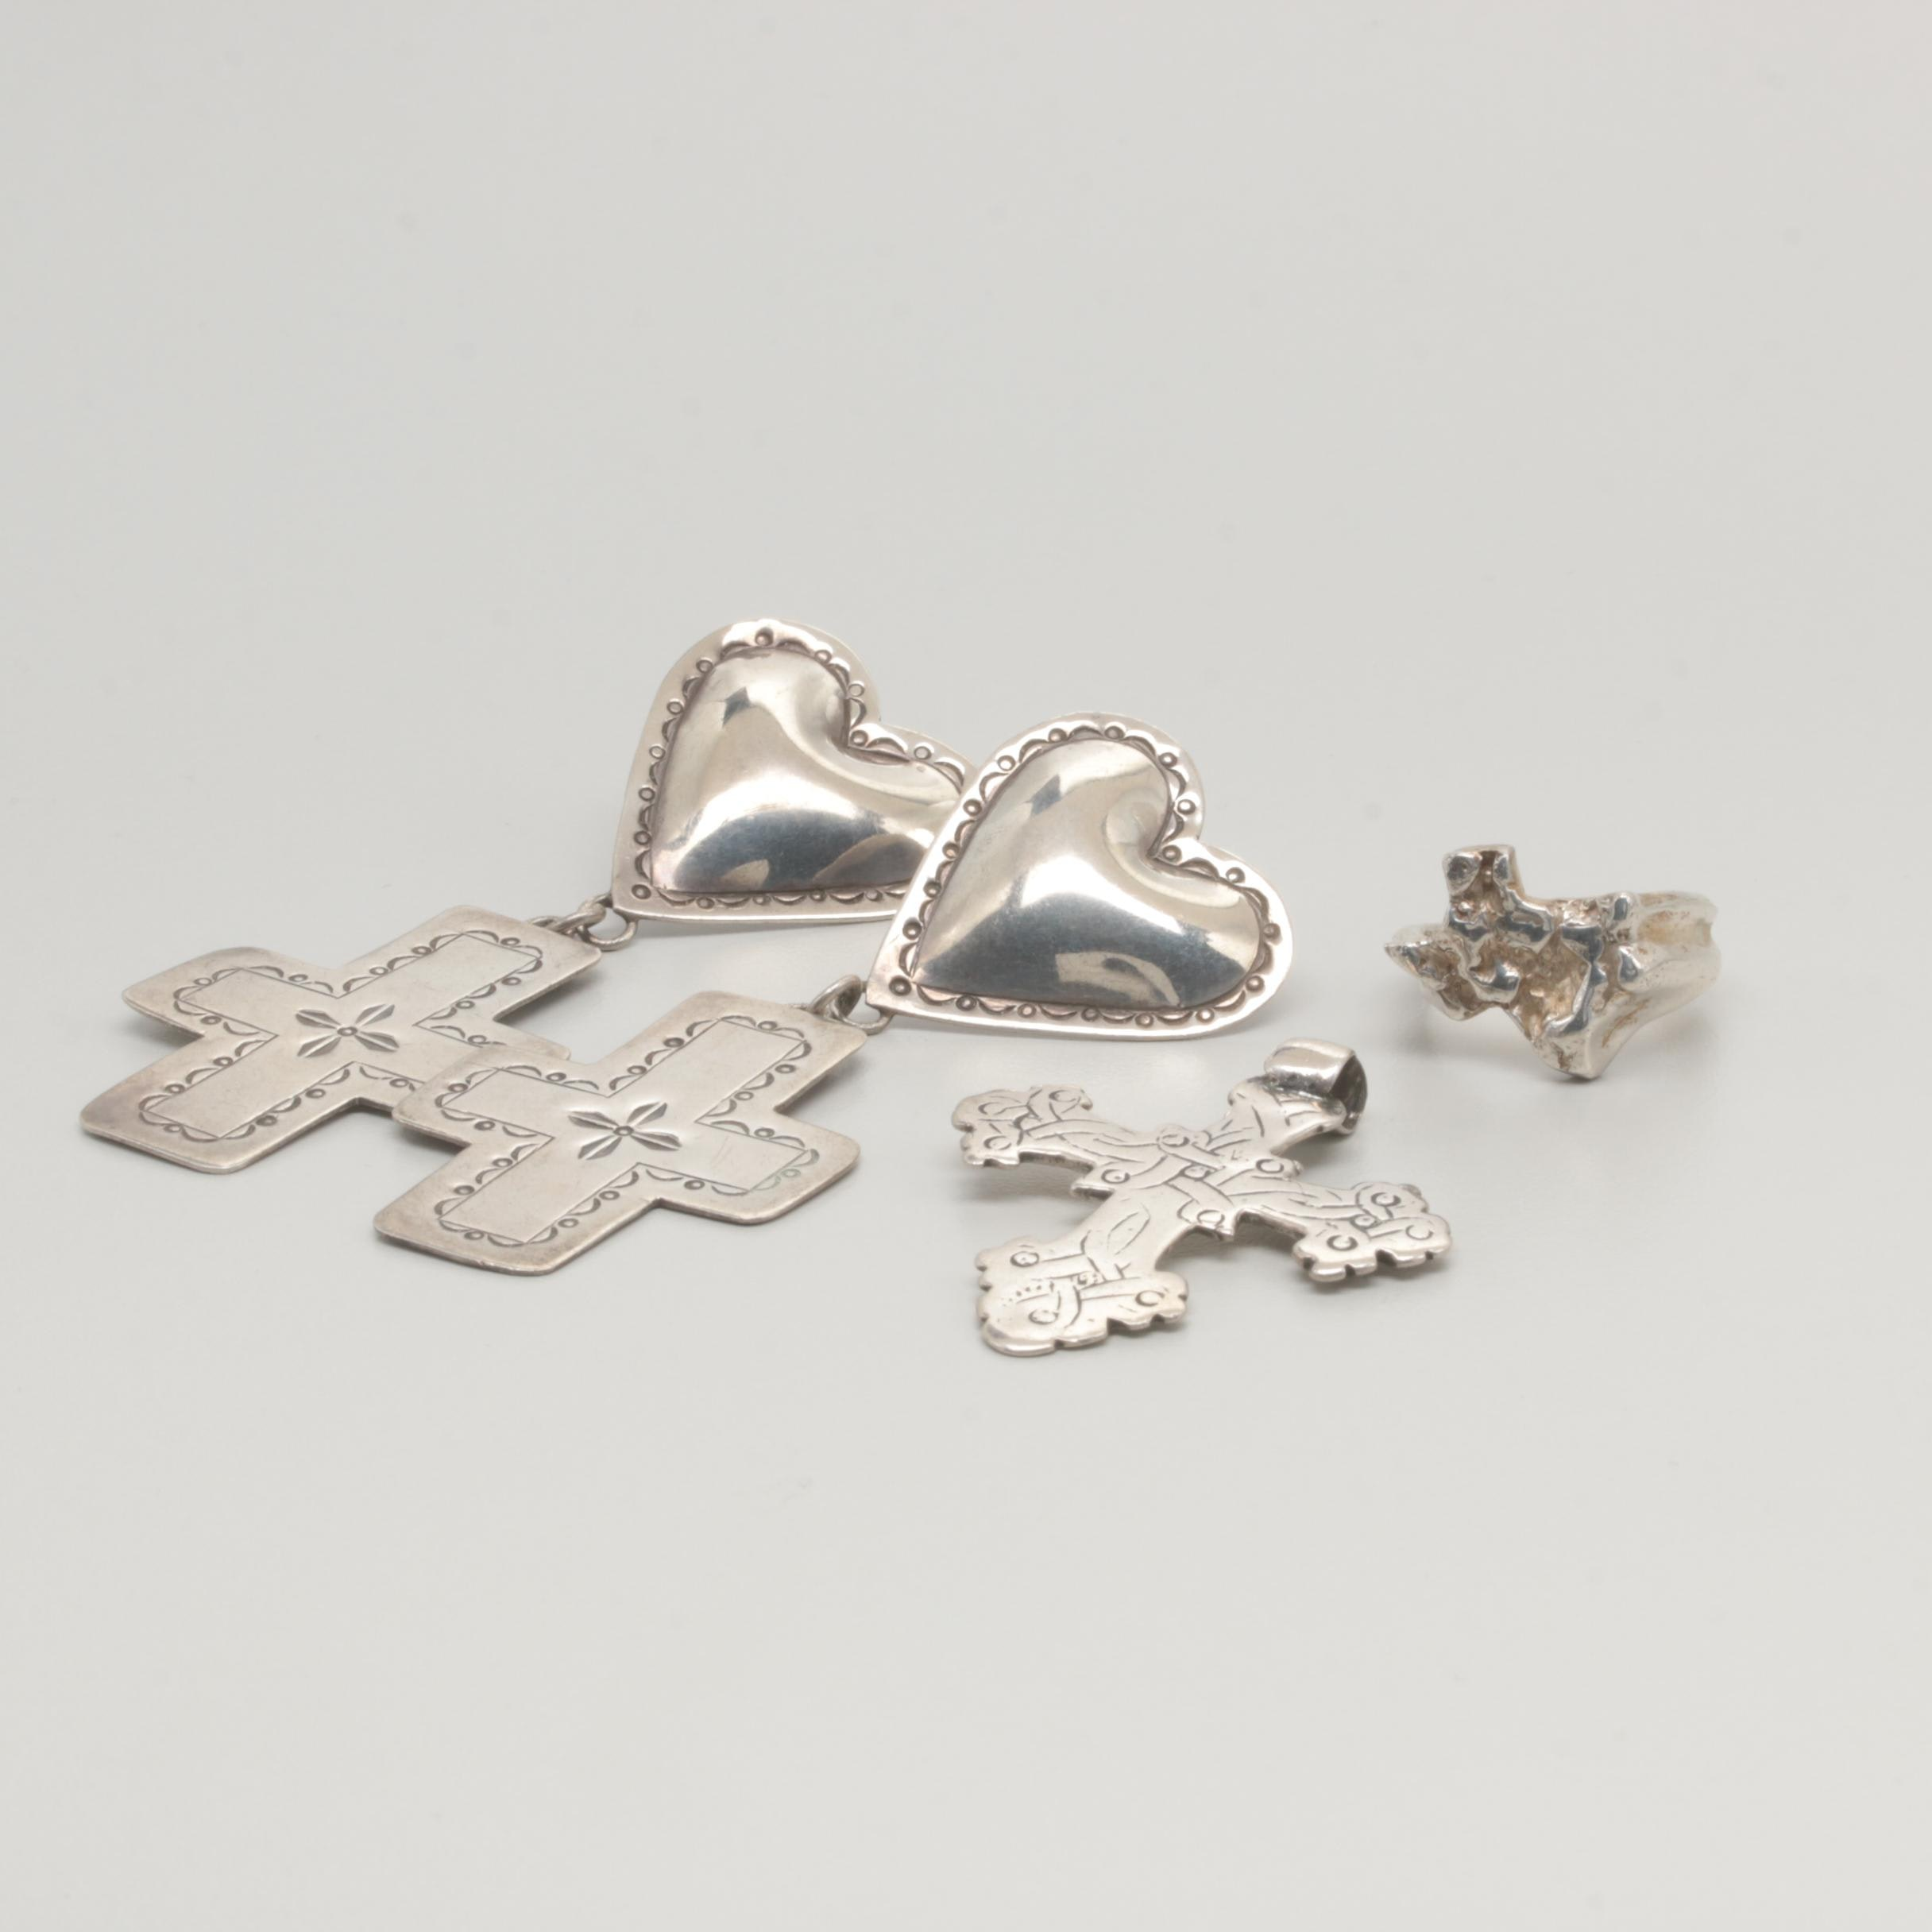 Sterling Silver Jewelry Selection Including Heart and Cross Motifs